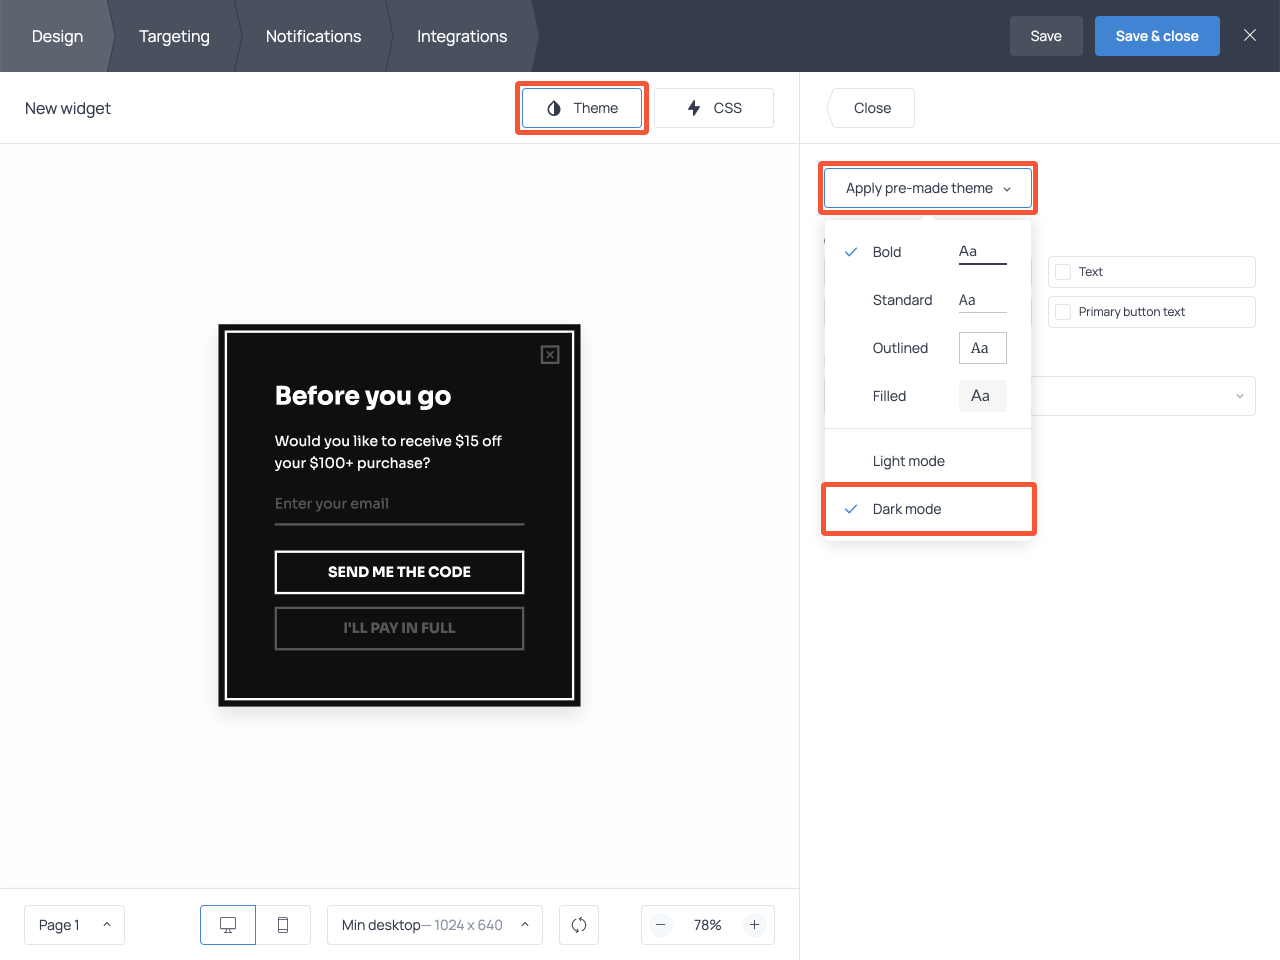 How to change the design of an exit-intent popup